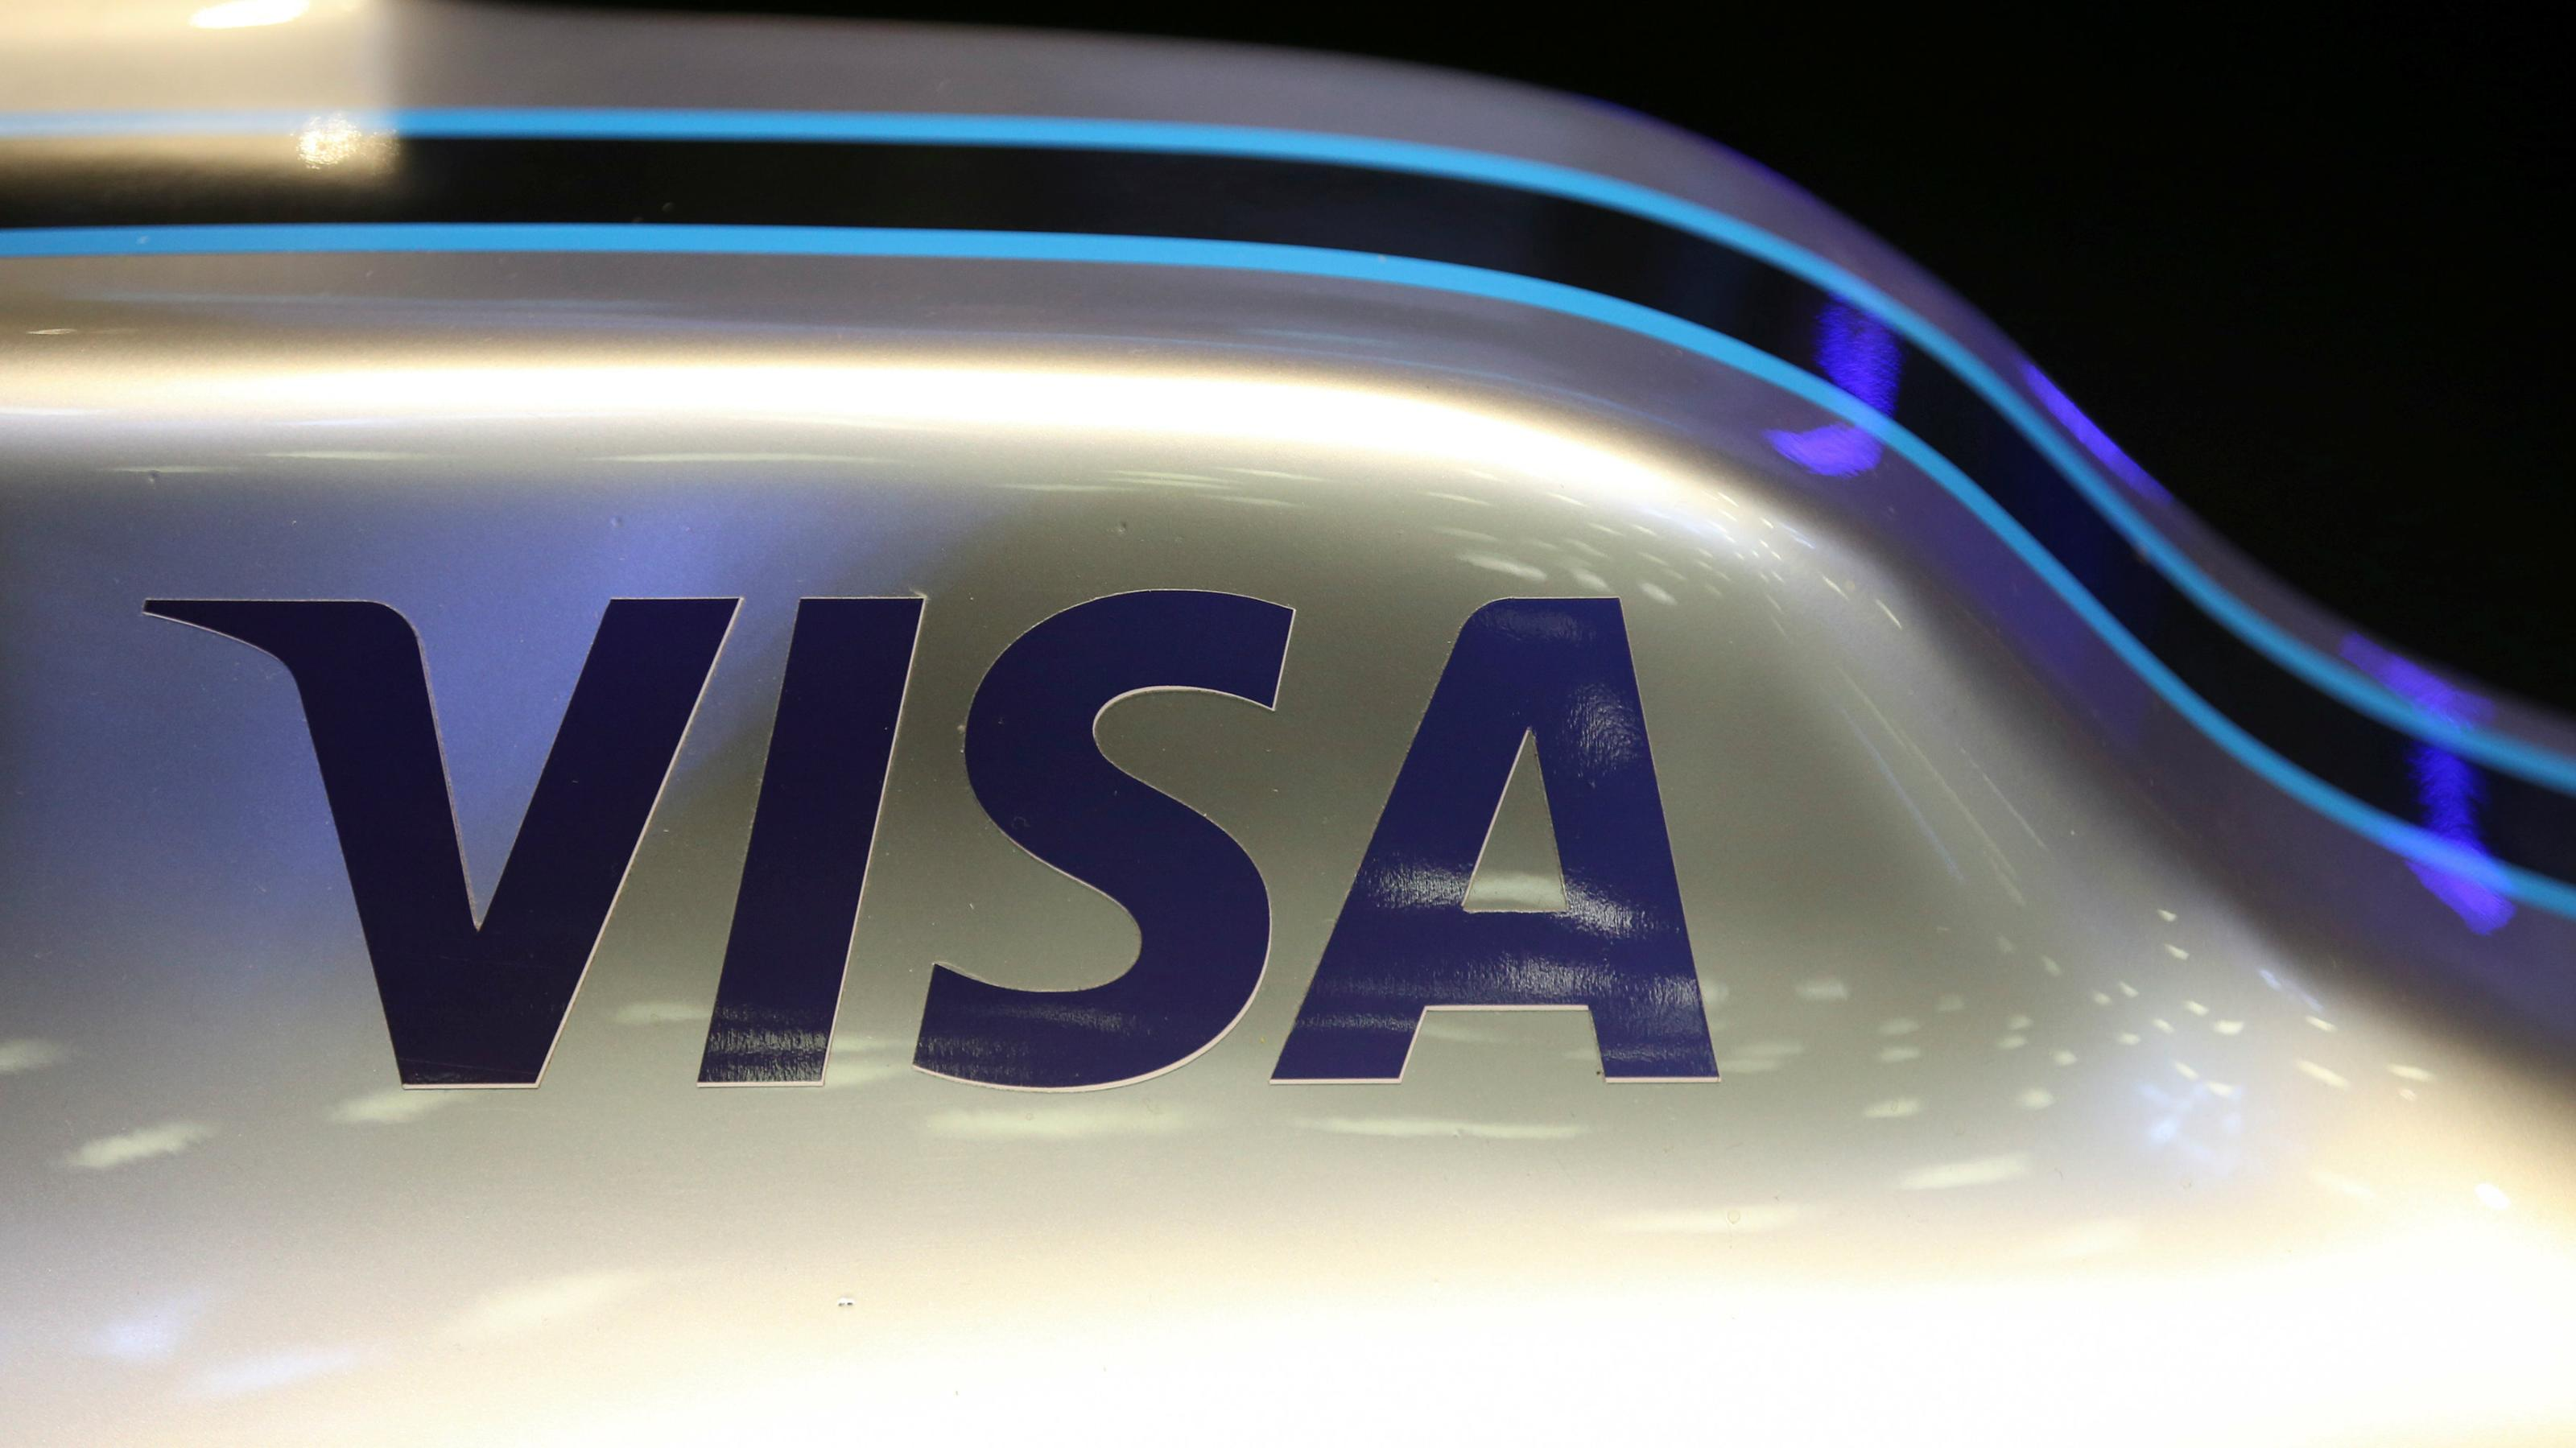 Visa is in talks to acquire part of Nordic payment firm Nets